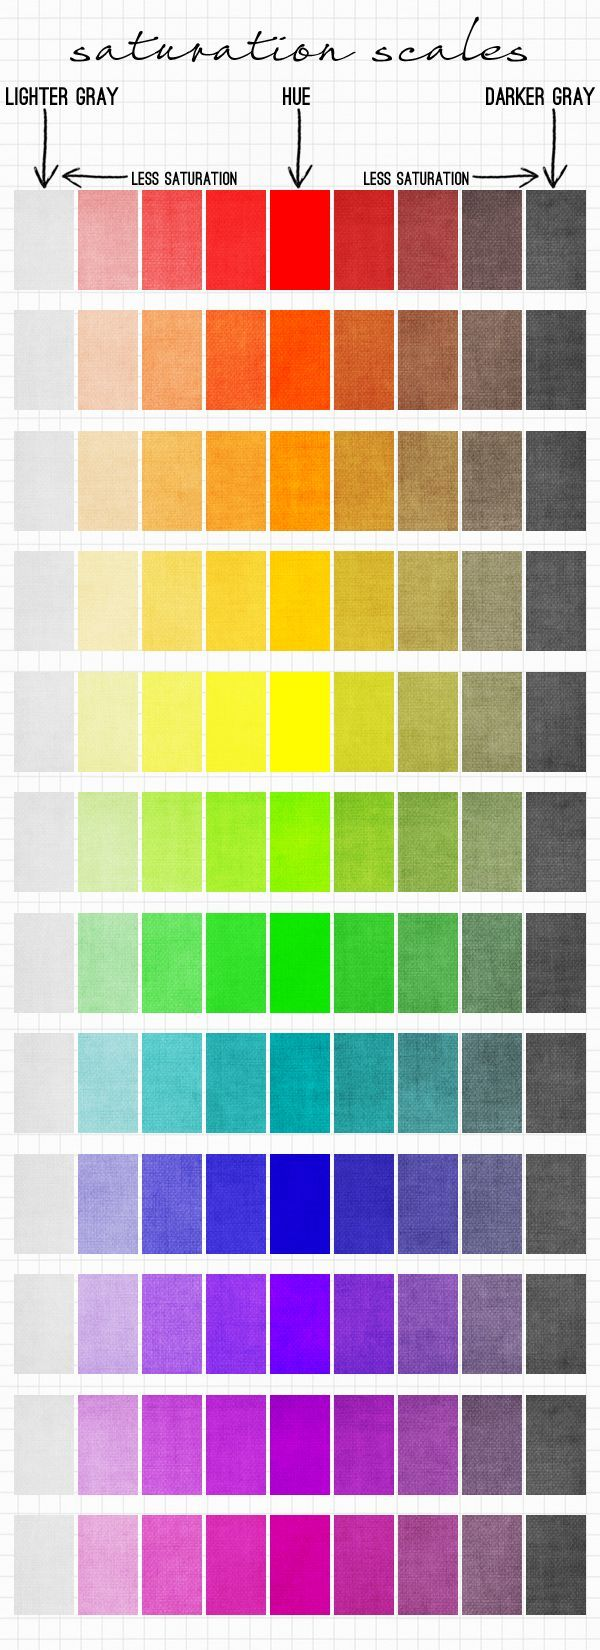 900 best Color Thesaurus, Color Wheels and Information images on ...